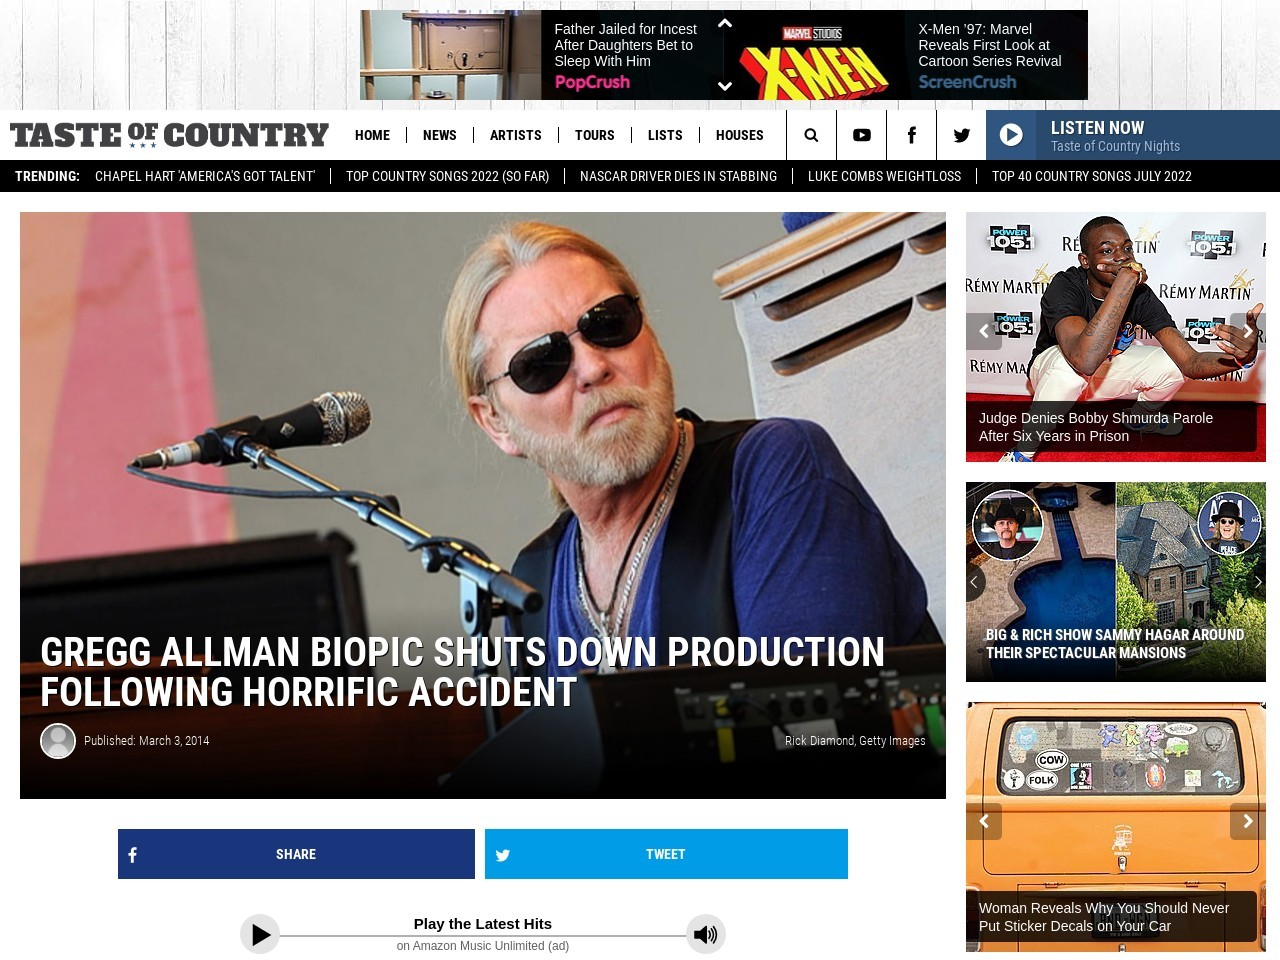 Gregg Allman Biopic Shuts Down Production – Taste of Country